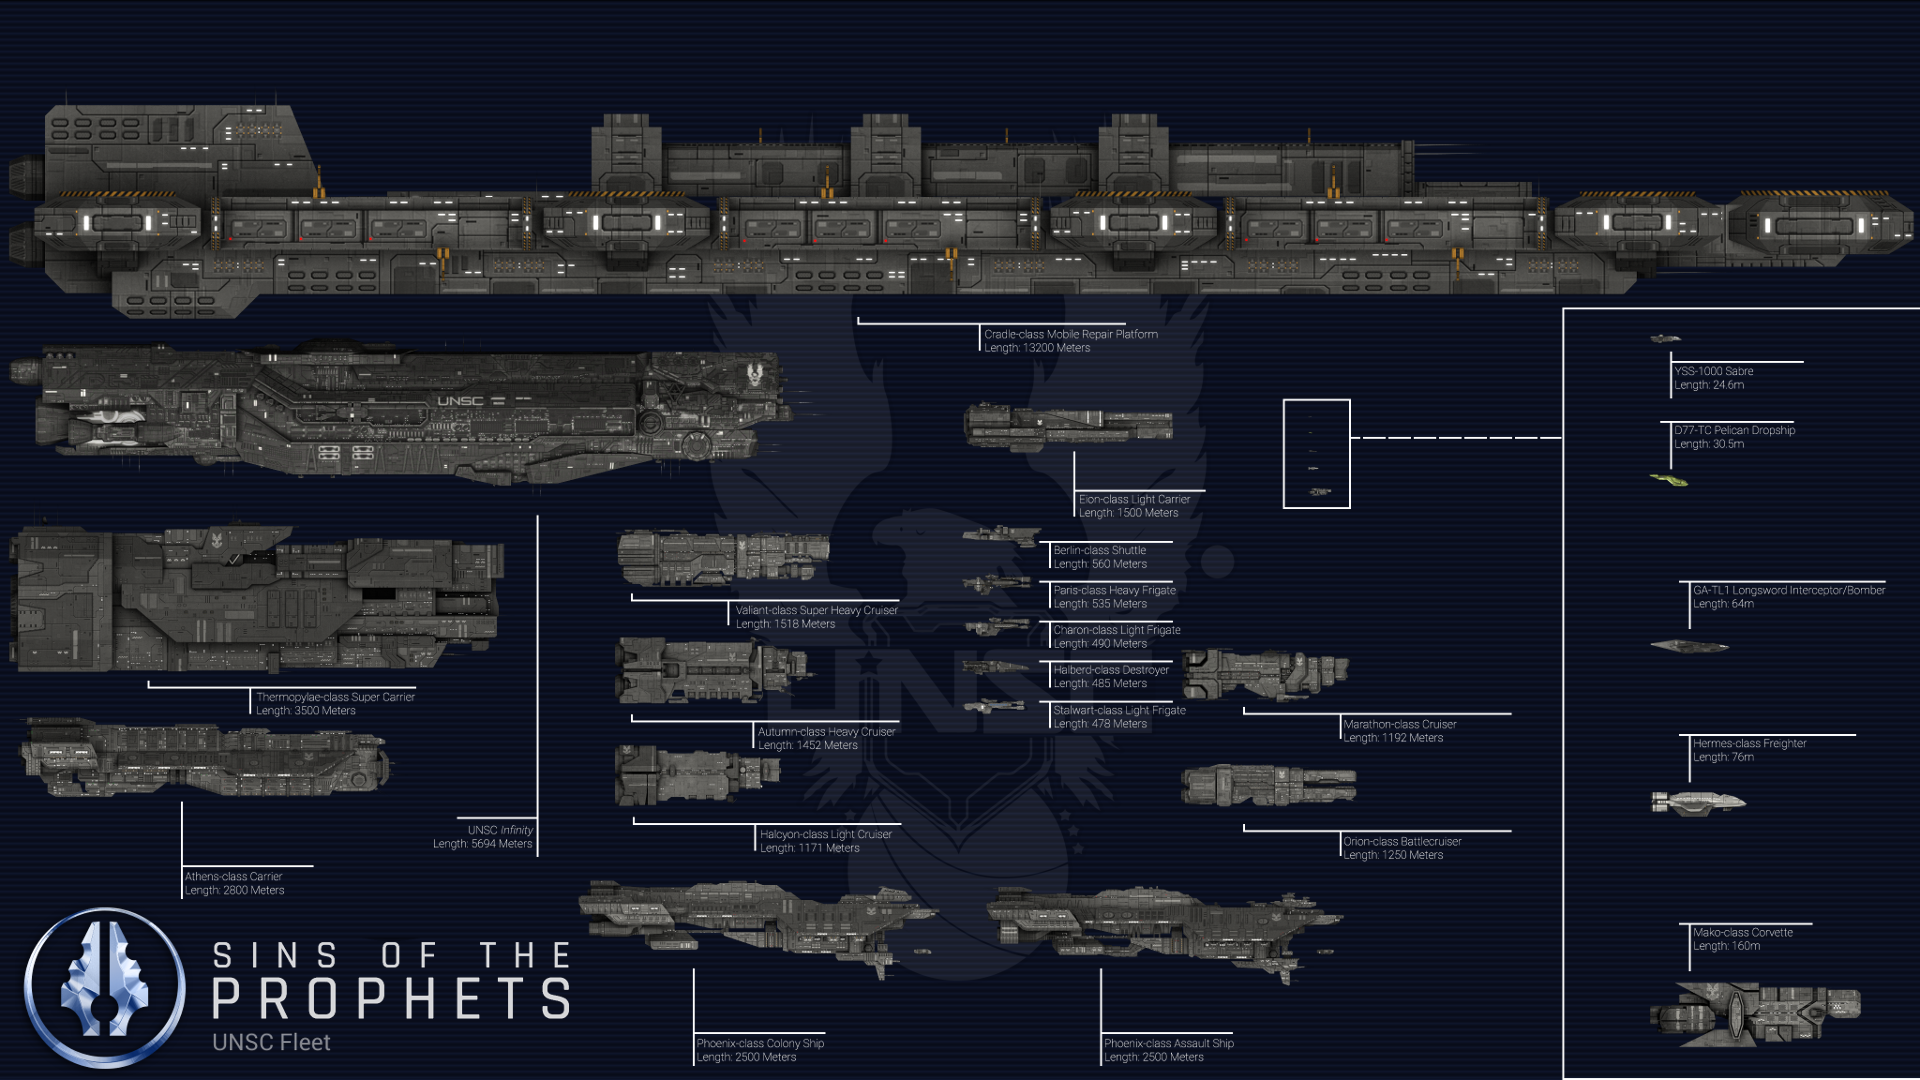 UNSC Fleet Scale image - Sins of the Prophets mod for Sins of a Solar Empire: Rebellion - Mod DB